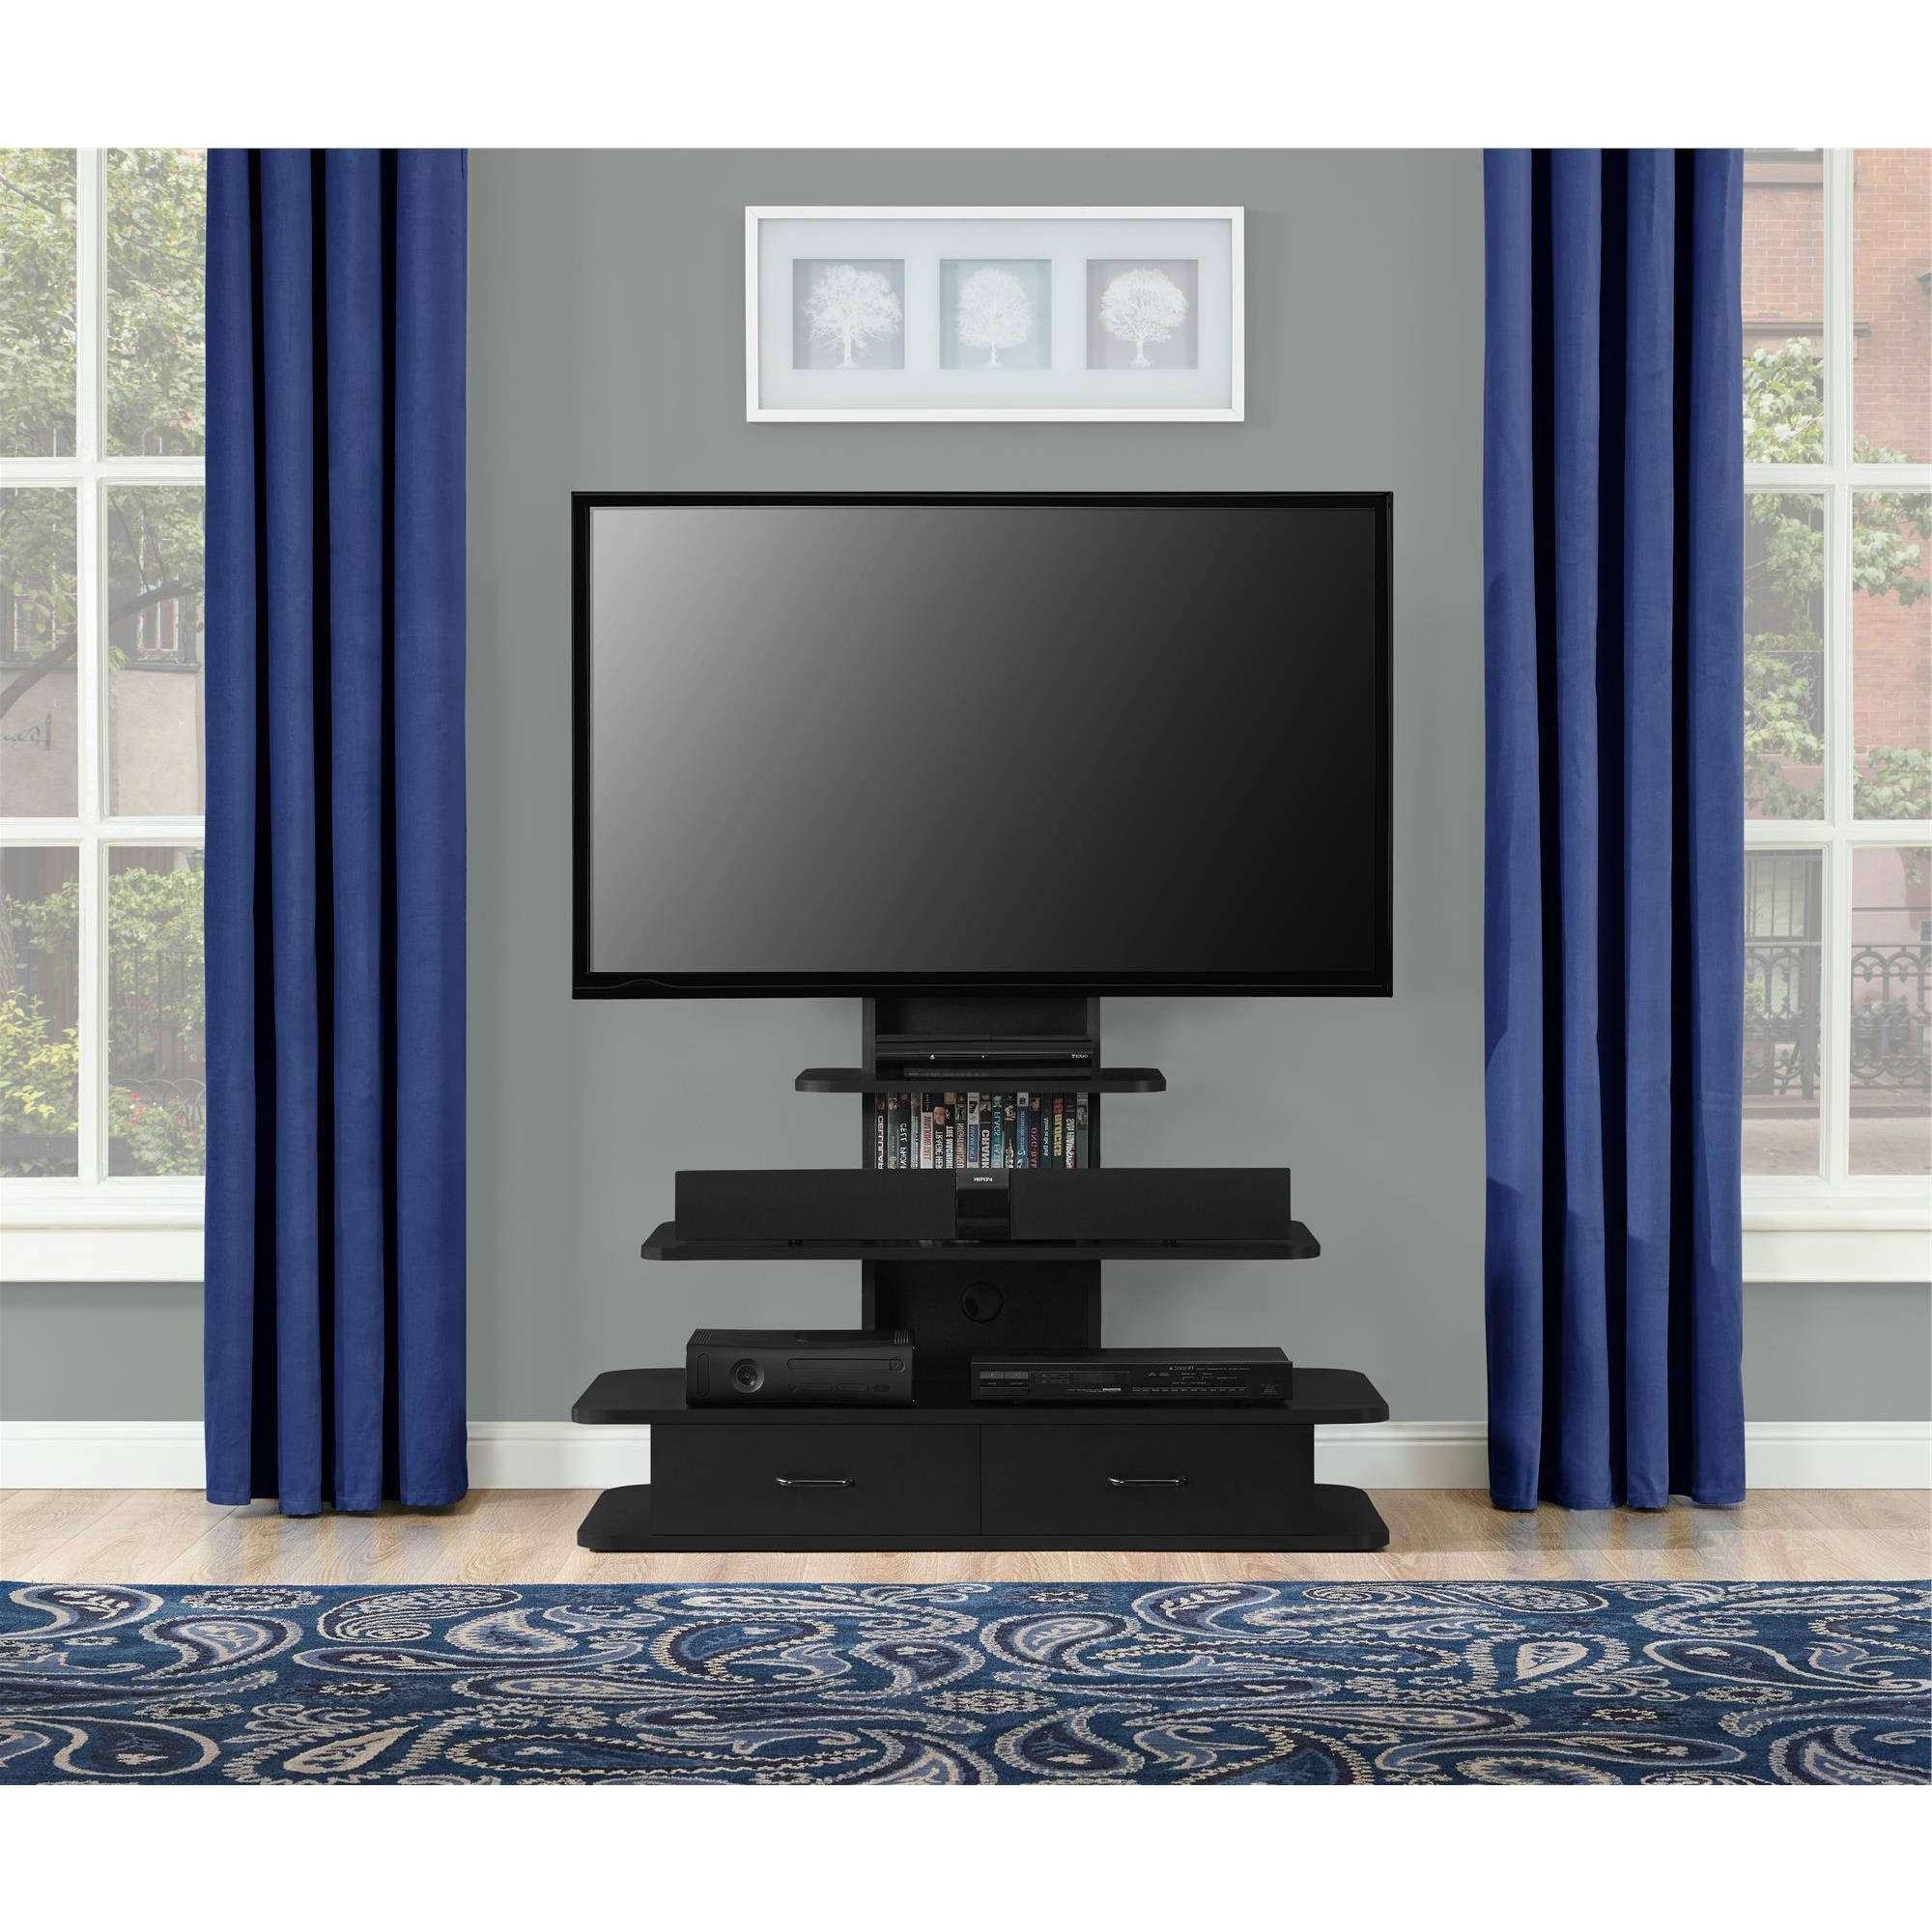 Tv : Amazing Tv Stands For 70 Flat Screen Contemporary Espresso Tv Throughout Tv Stands For 70 Flat Screen (View 6 of 15)